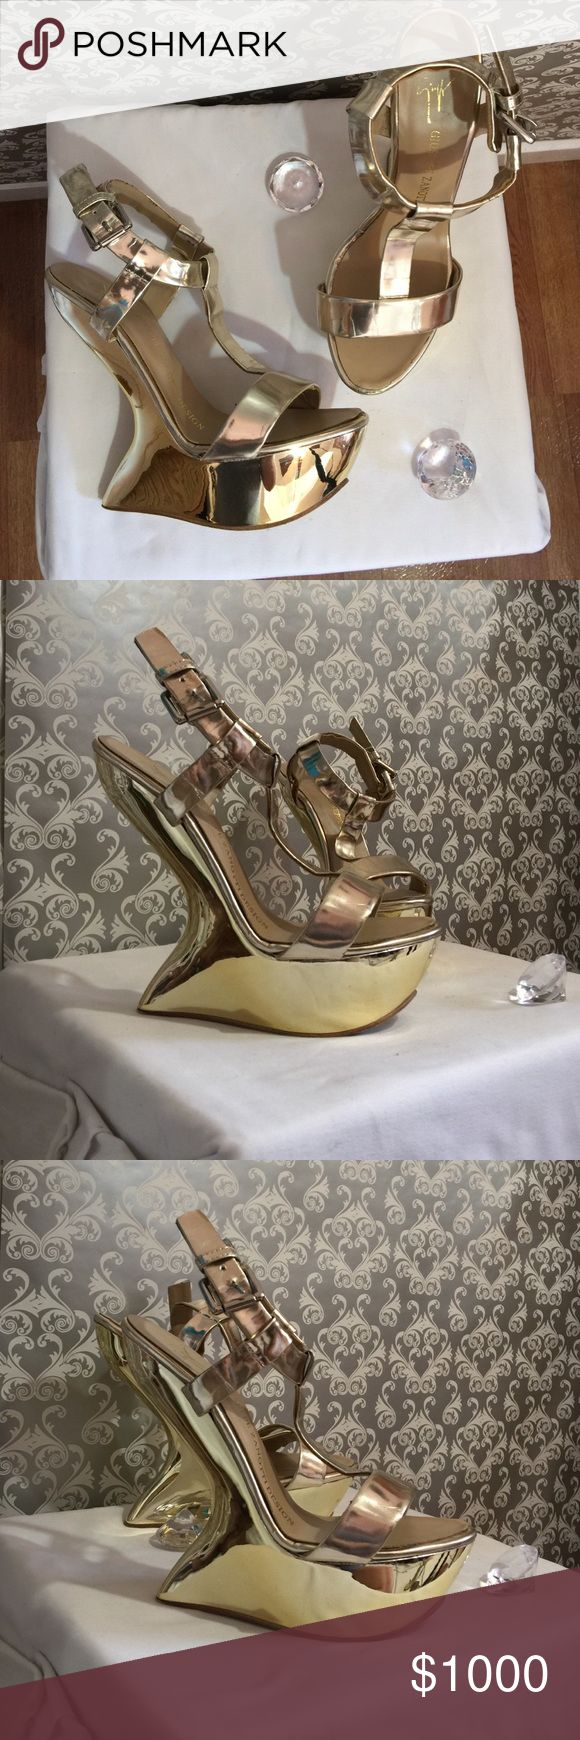 Giuseppe Zanotti Design gold heels Has use in really good condition please comment for q&a Giuseppe Zanotti Shoes